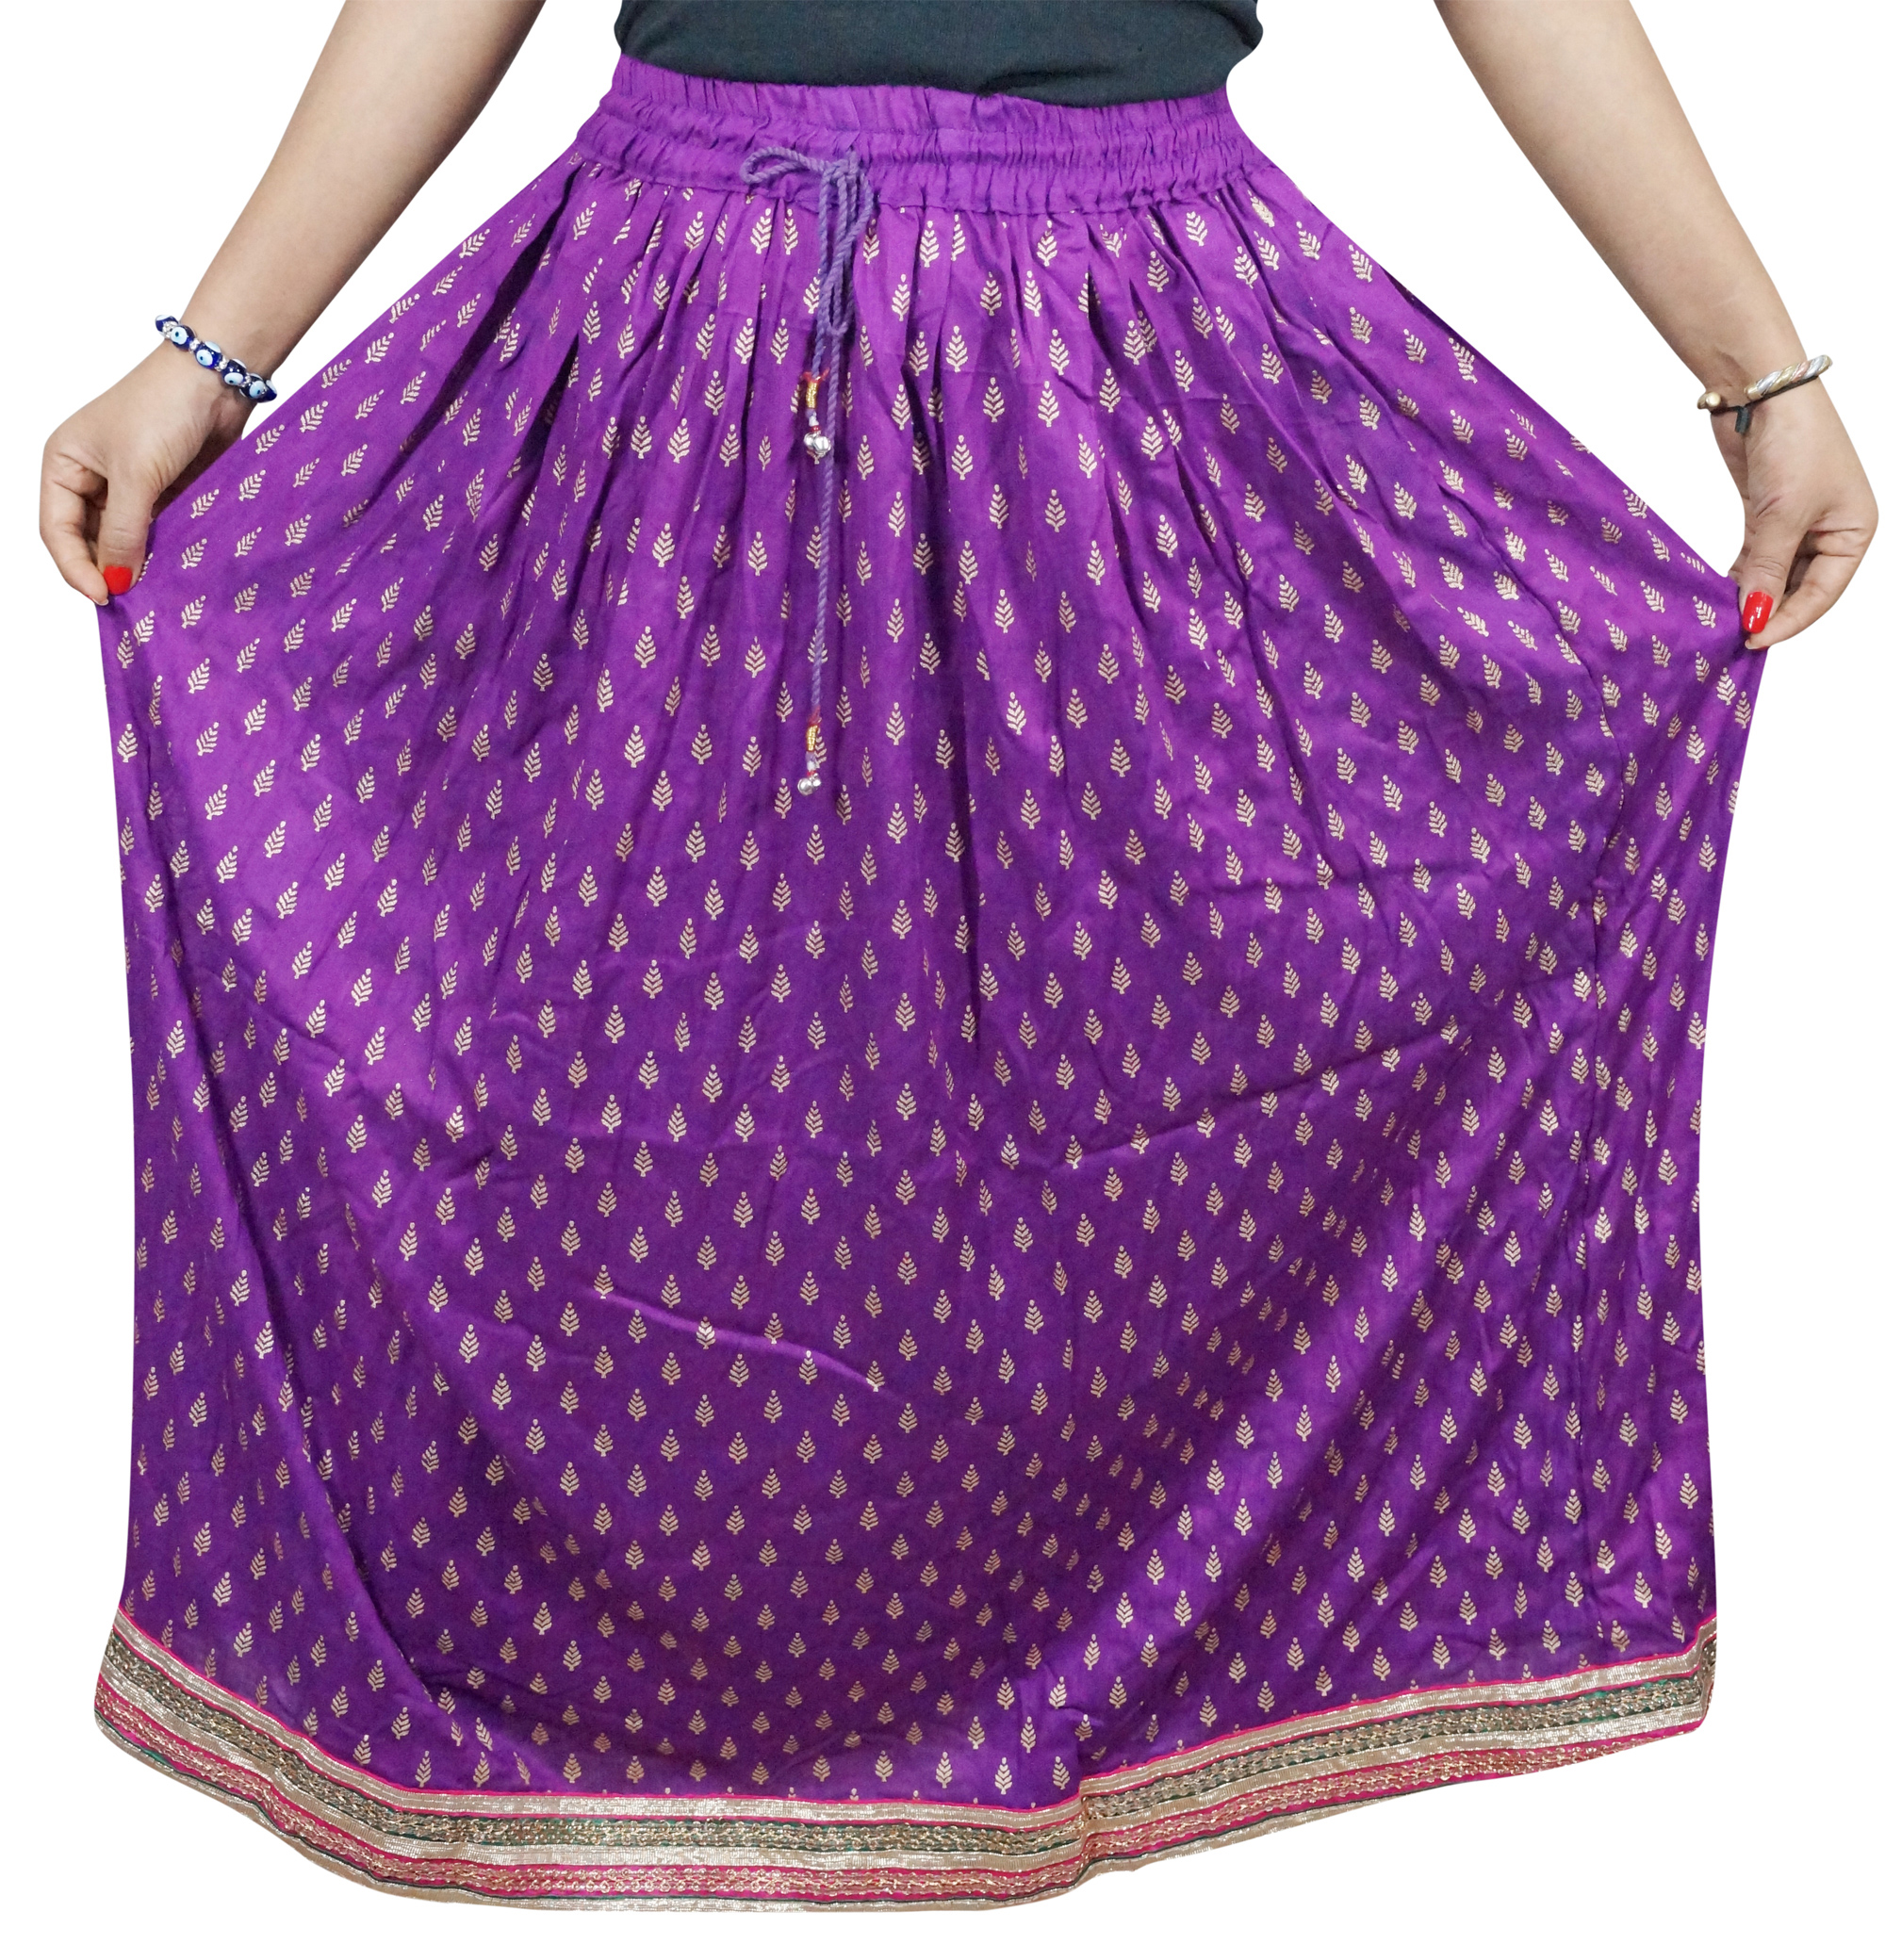 Mogul Women's Summer Skirt A-Line Purple Rayon Boho Chic Long Skirts